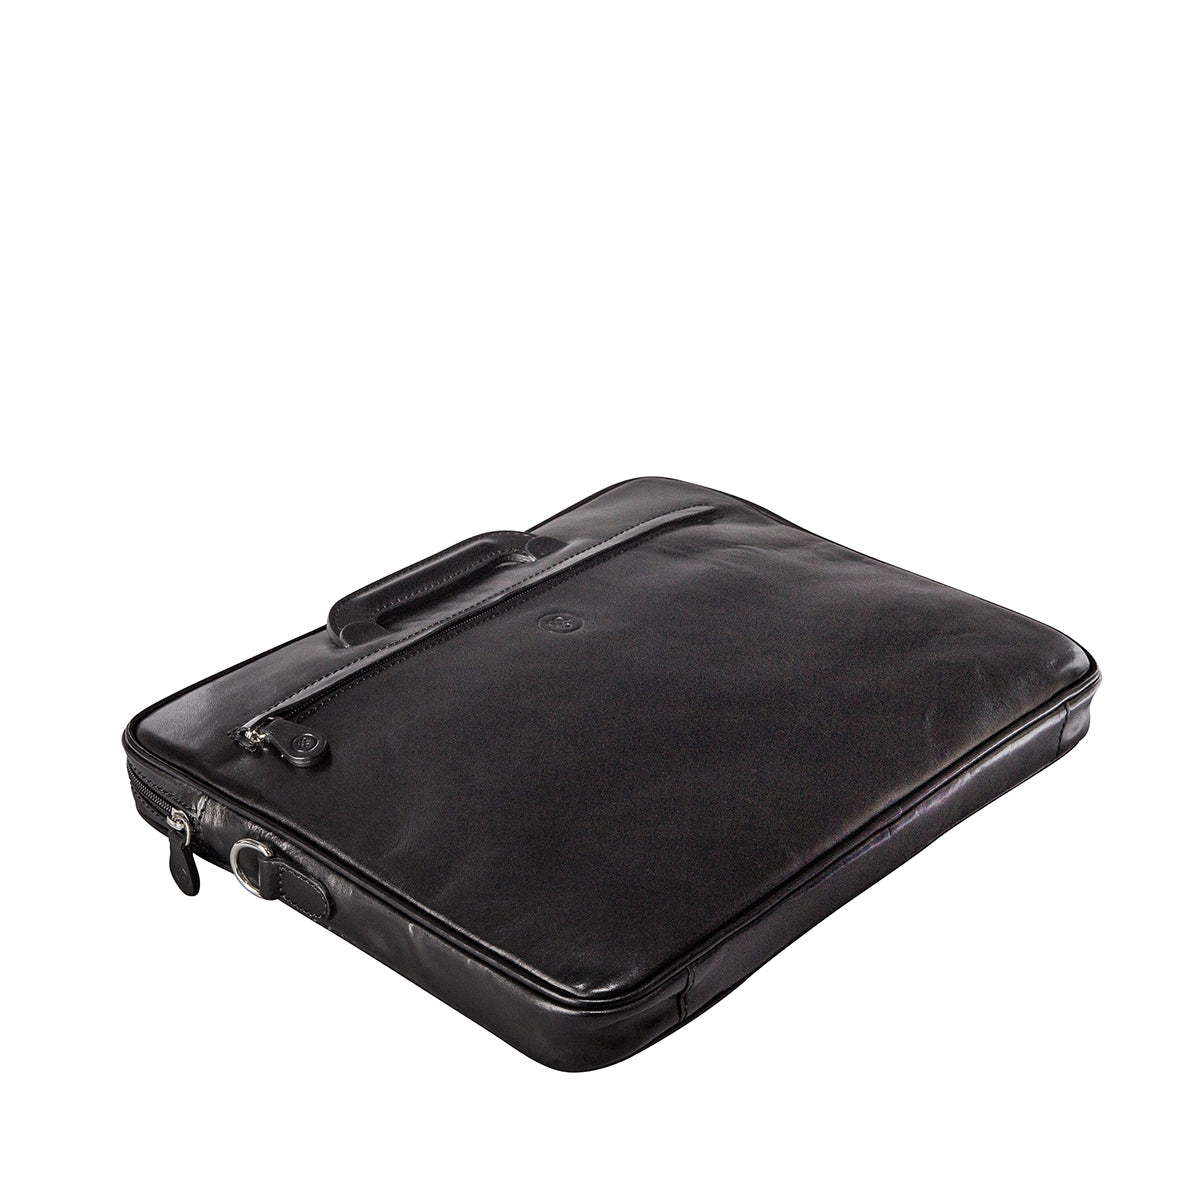 Image 4 of the 'Tutti' Black Veg-Tanned Leather Document Folio